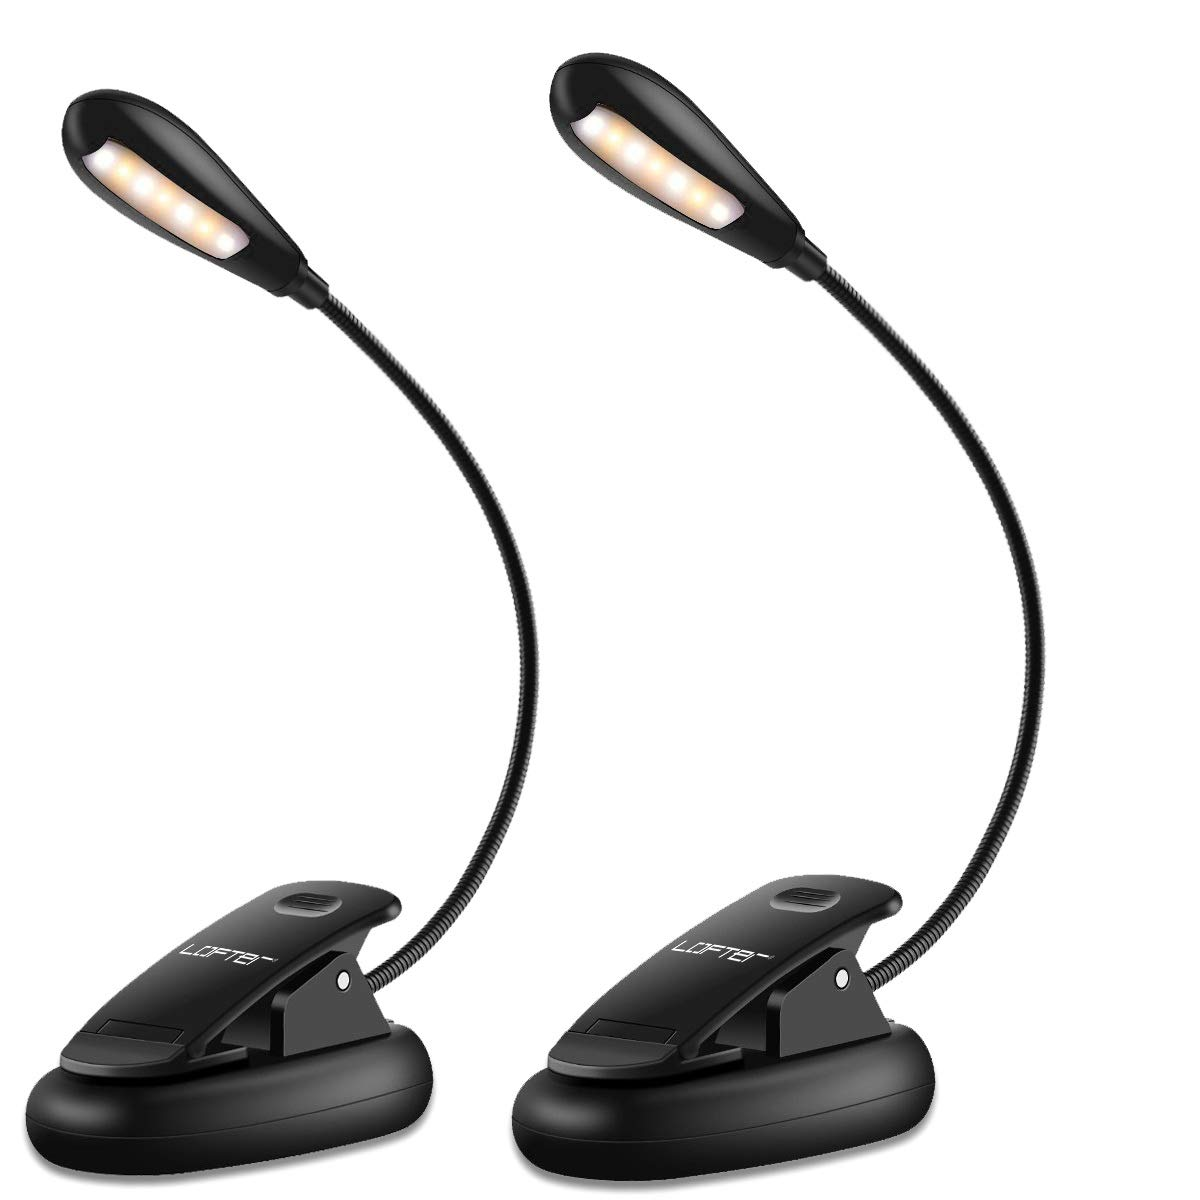 Reading Light 7 LED Rechargeable Book Light, 9-Level Warm & White Brightness, Flexible Clip on Reading Lamp for Books in Bed (2 Pack)